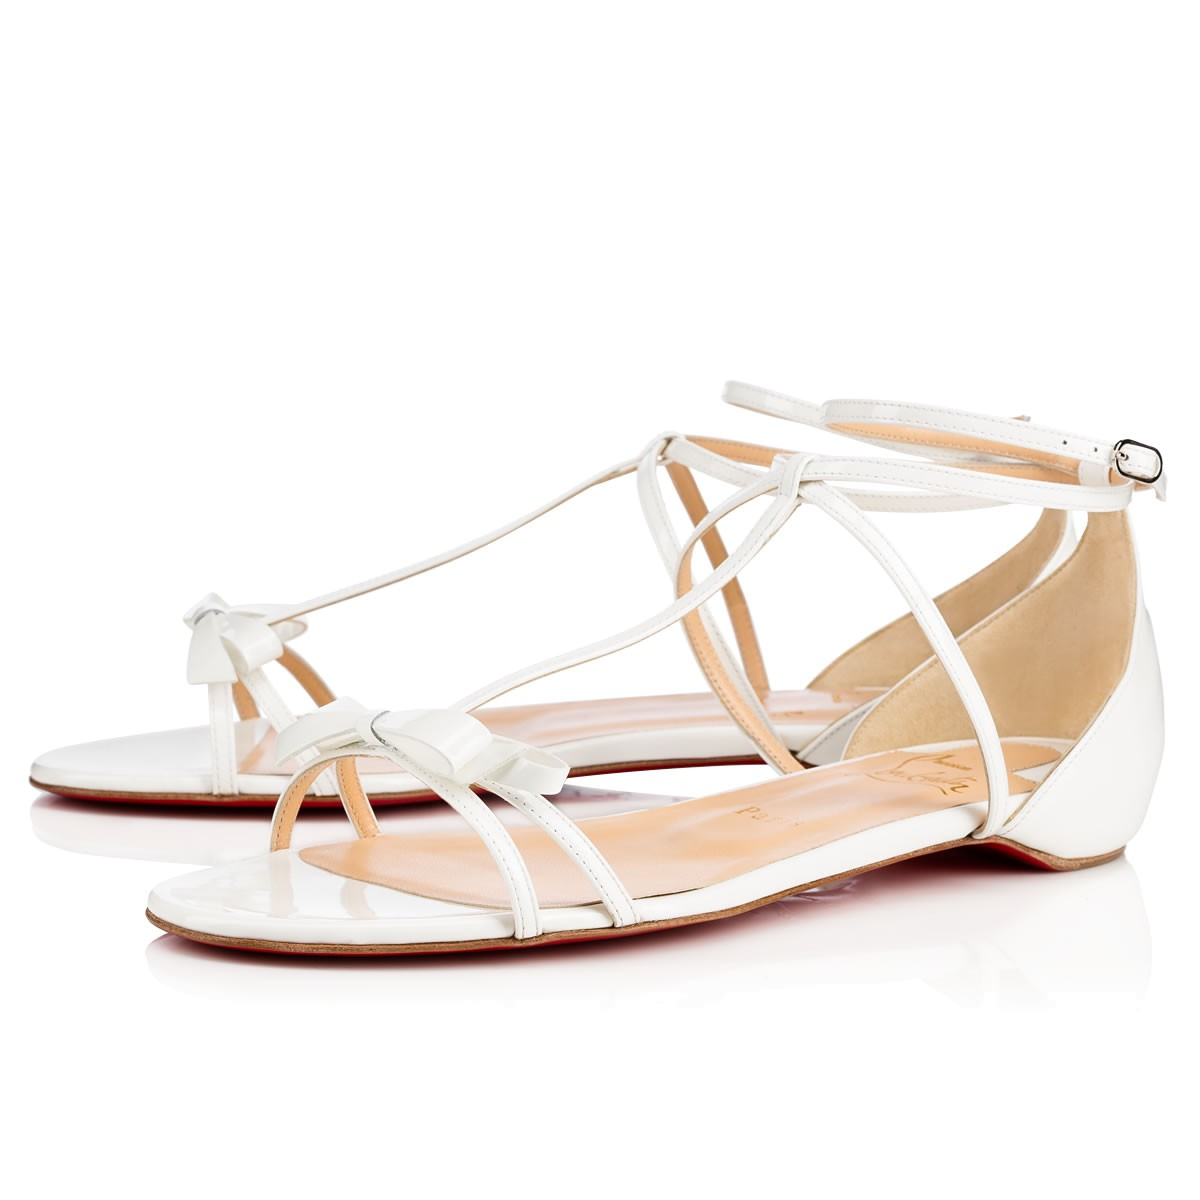 c0948d0d2bf0 Christian Louboutin Blakissima Patent Bow Flat Red Sole Sandal